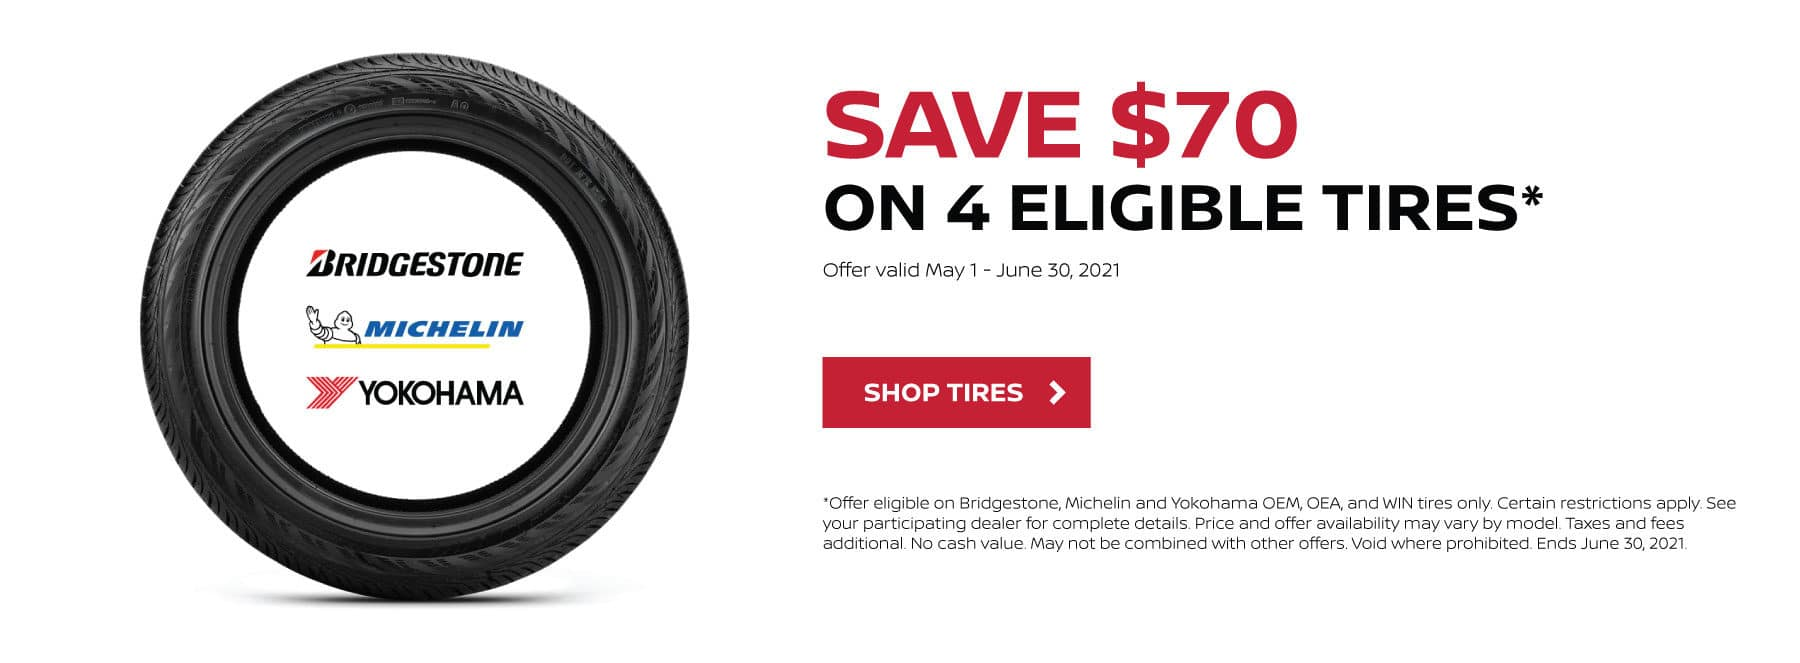 Save $70 on 4 eligible tires